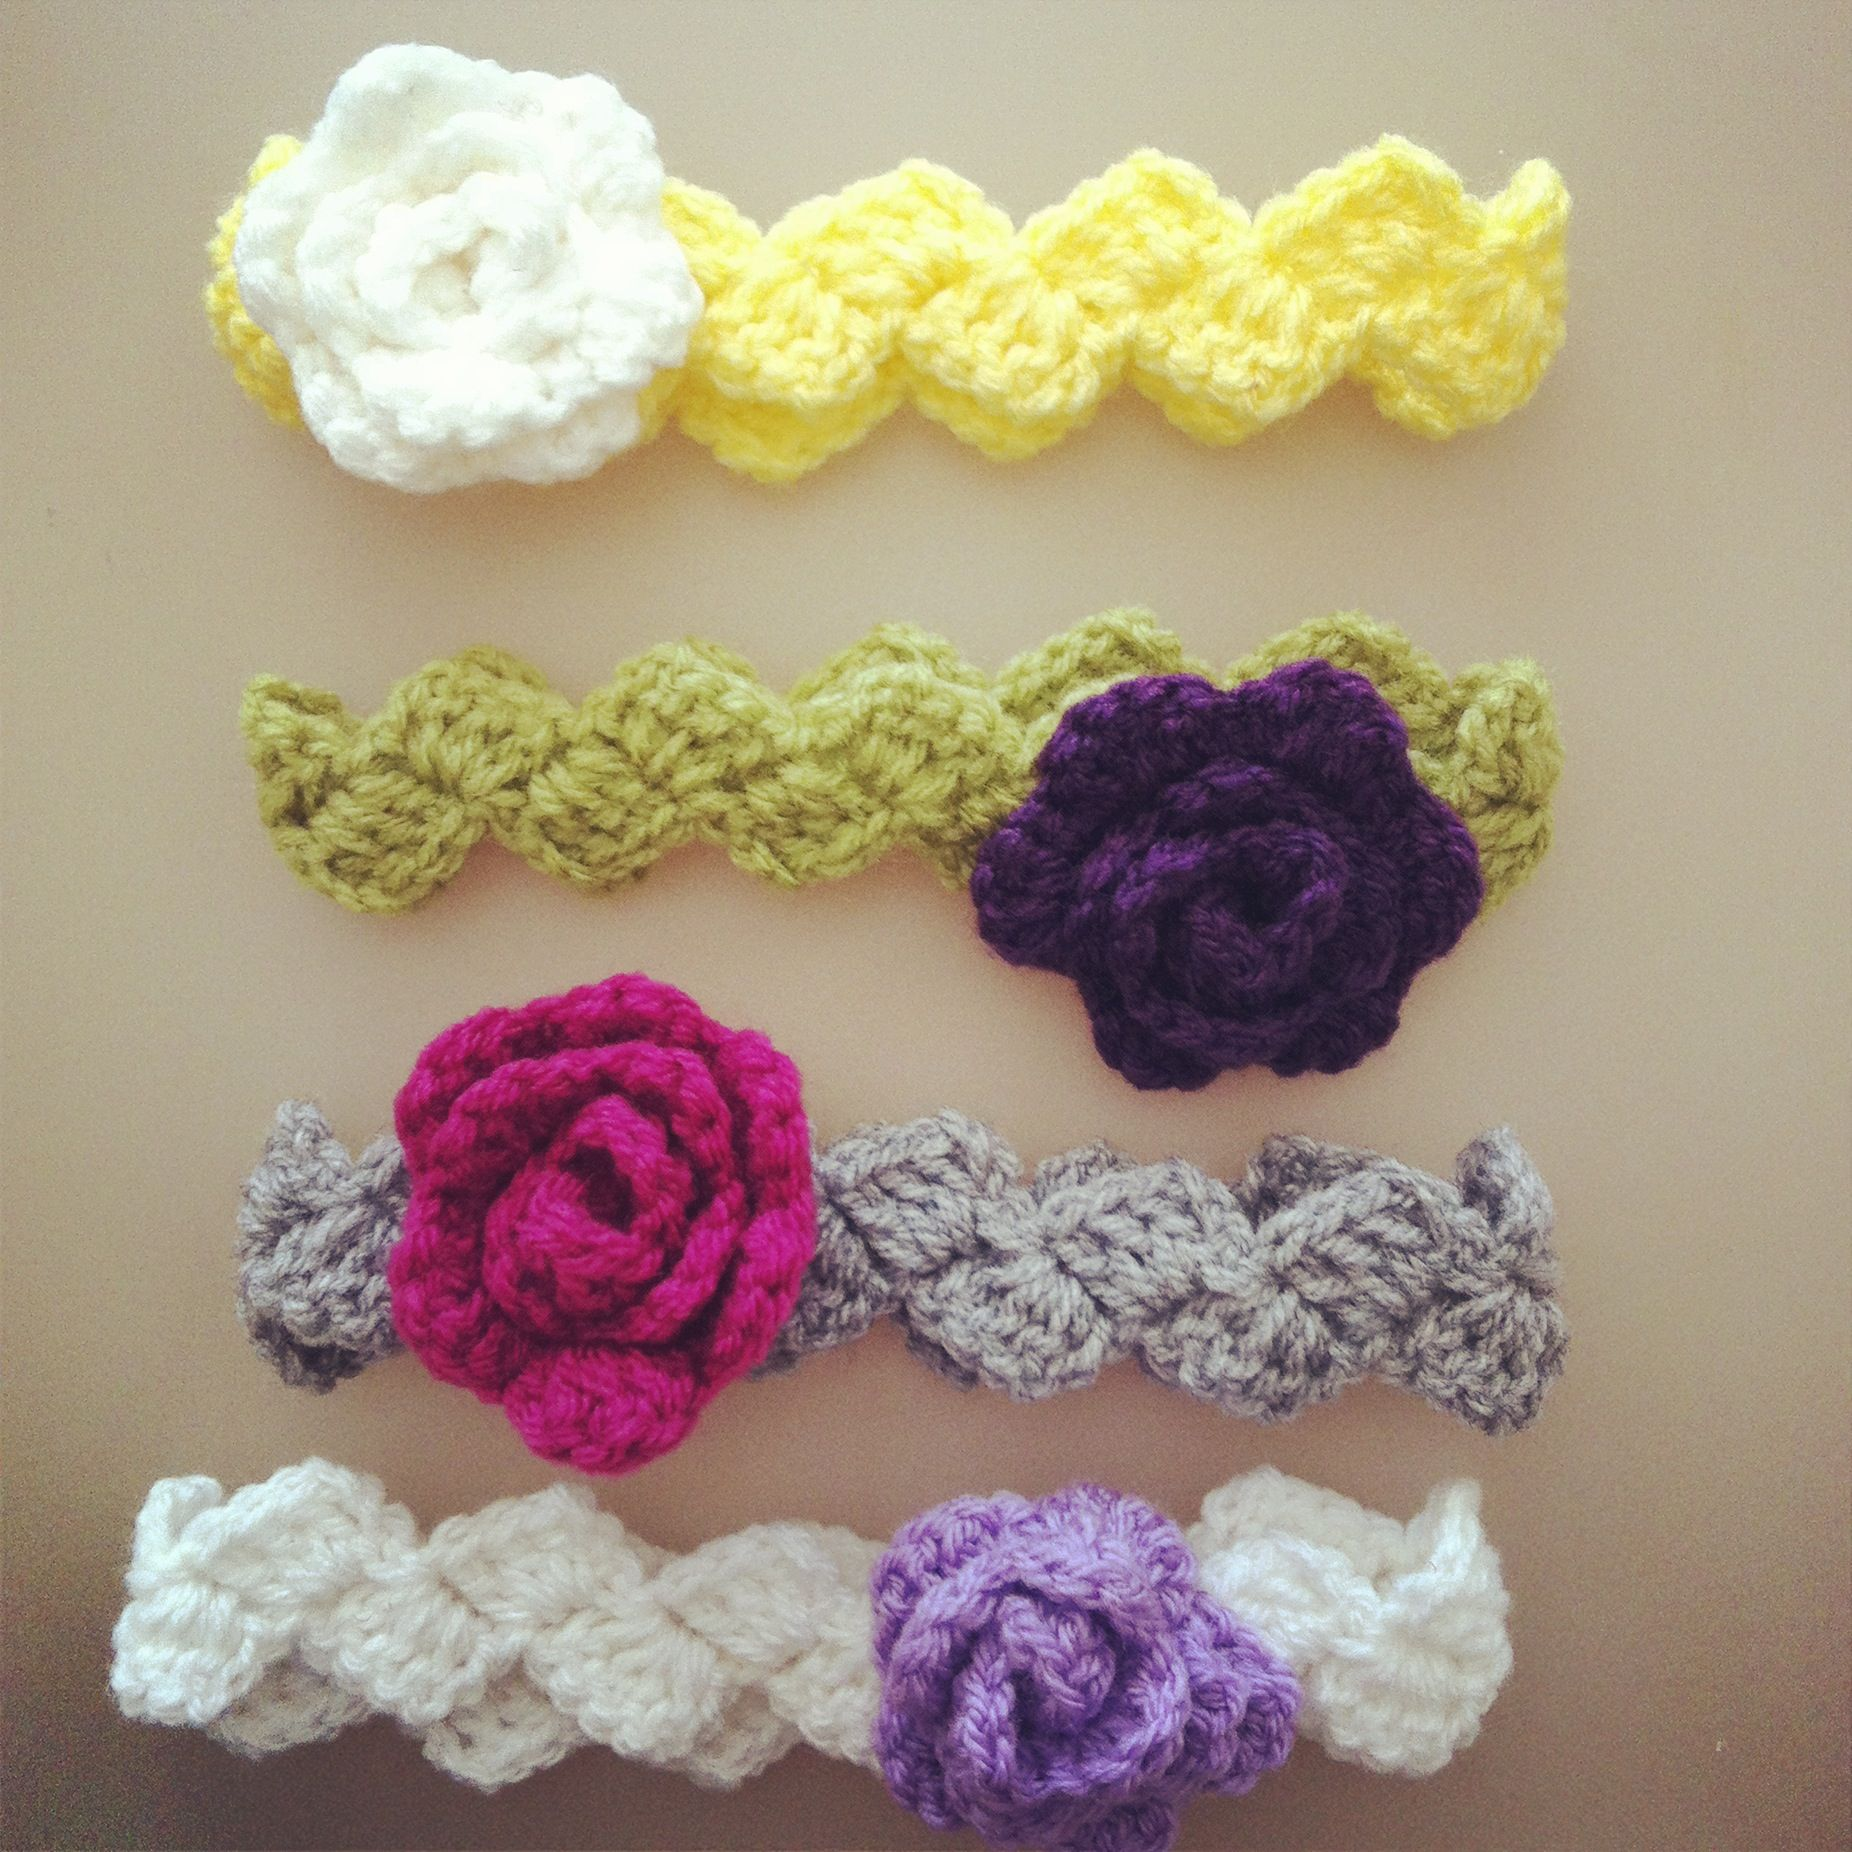 My handmade crochet baby headbands made to order | Food | Pinterest ...